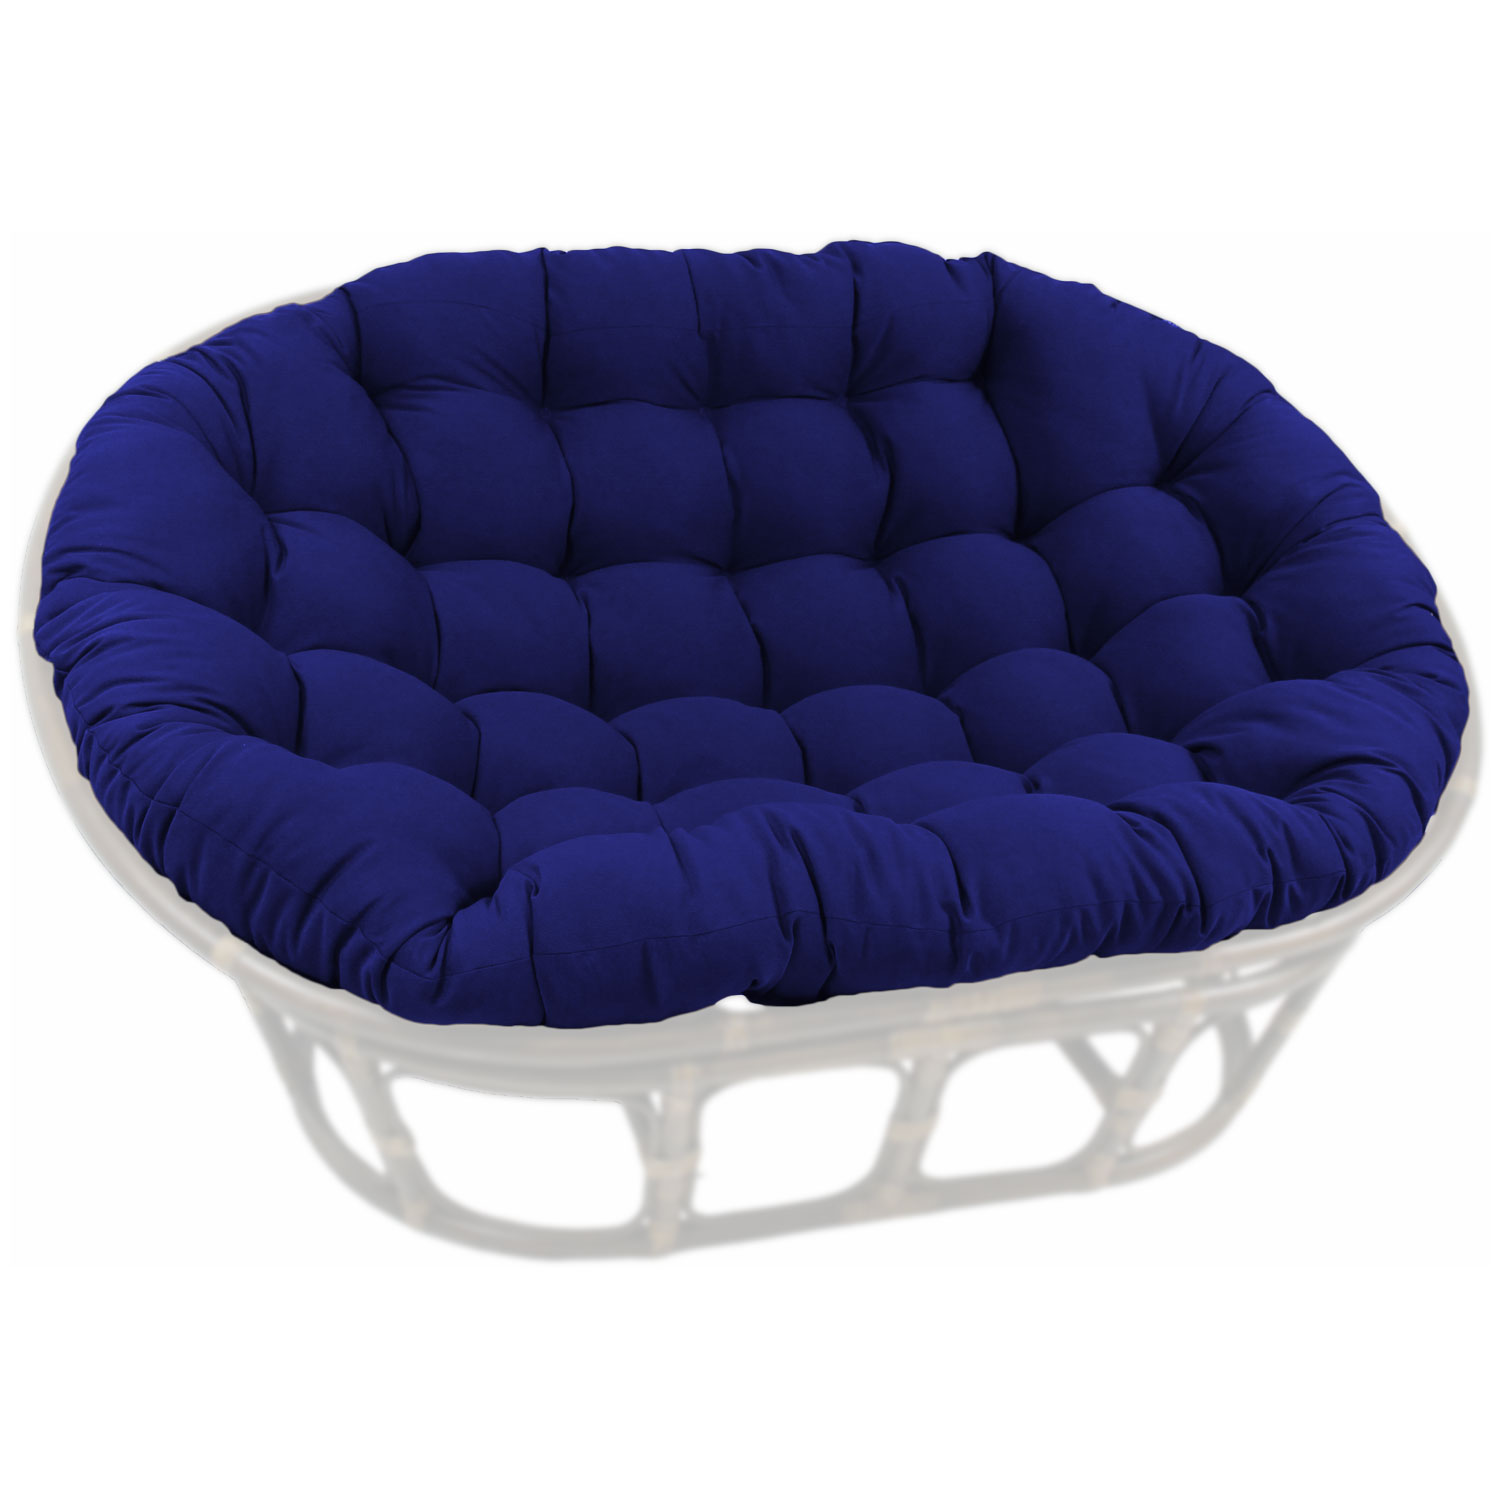 Papasan Cushion Cover Replacement | Papasan Cushion Sale | Papasan Cushion